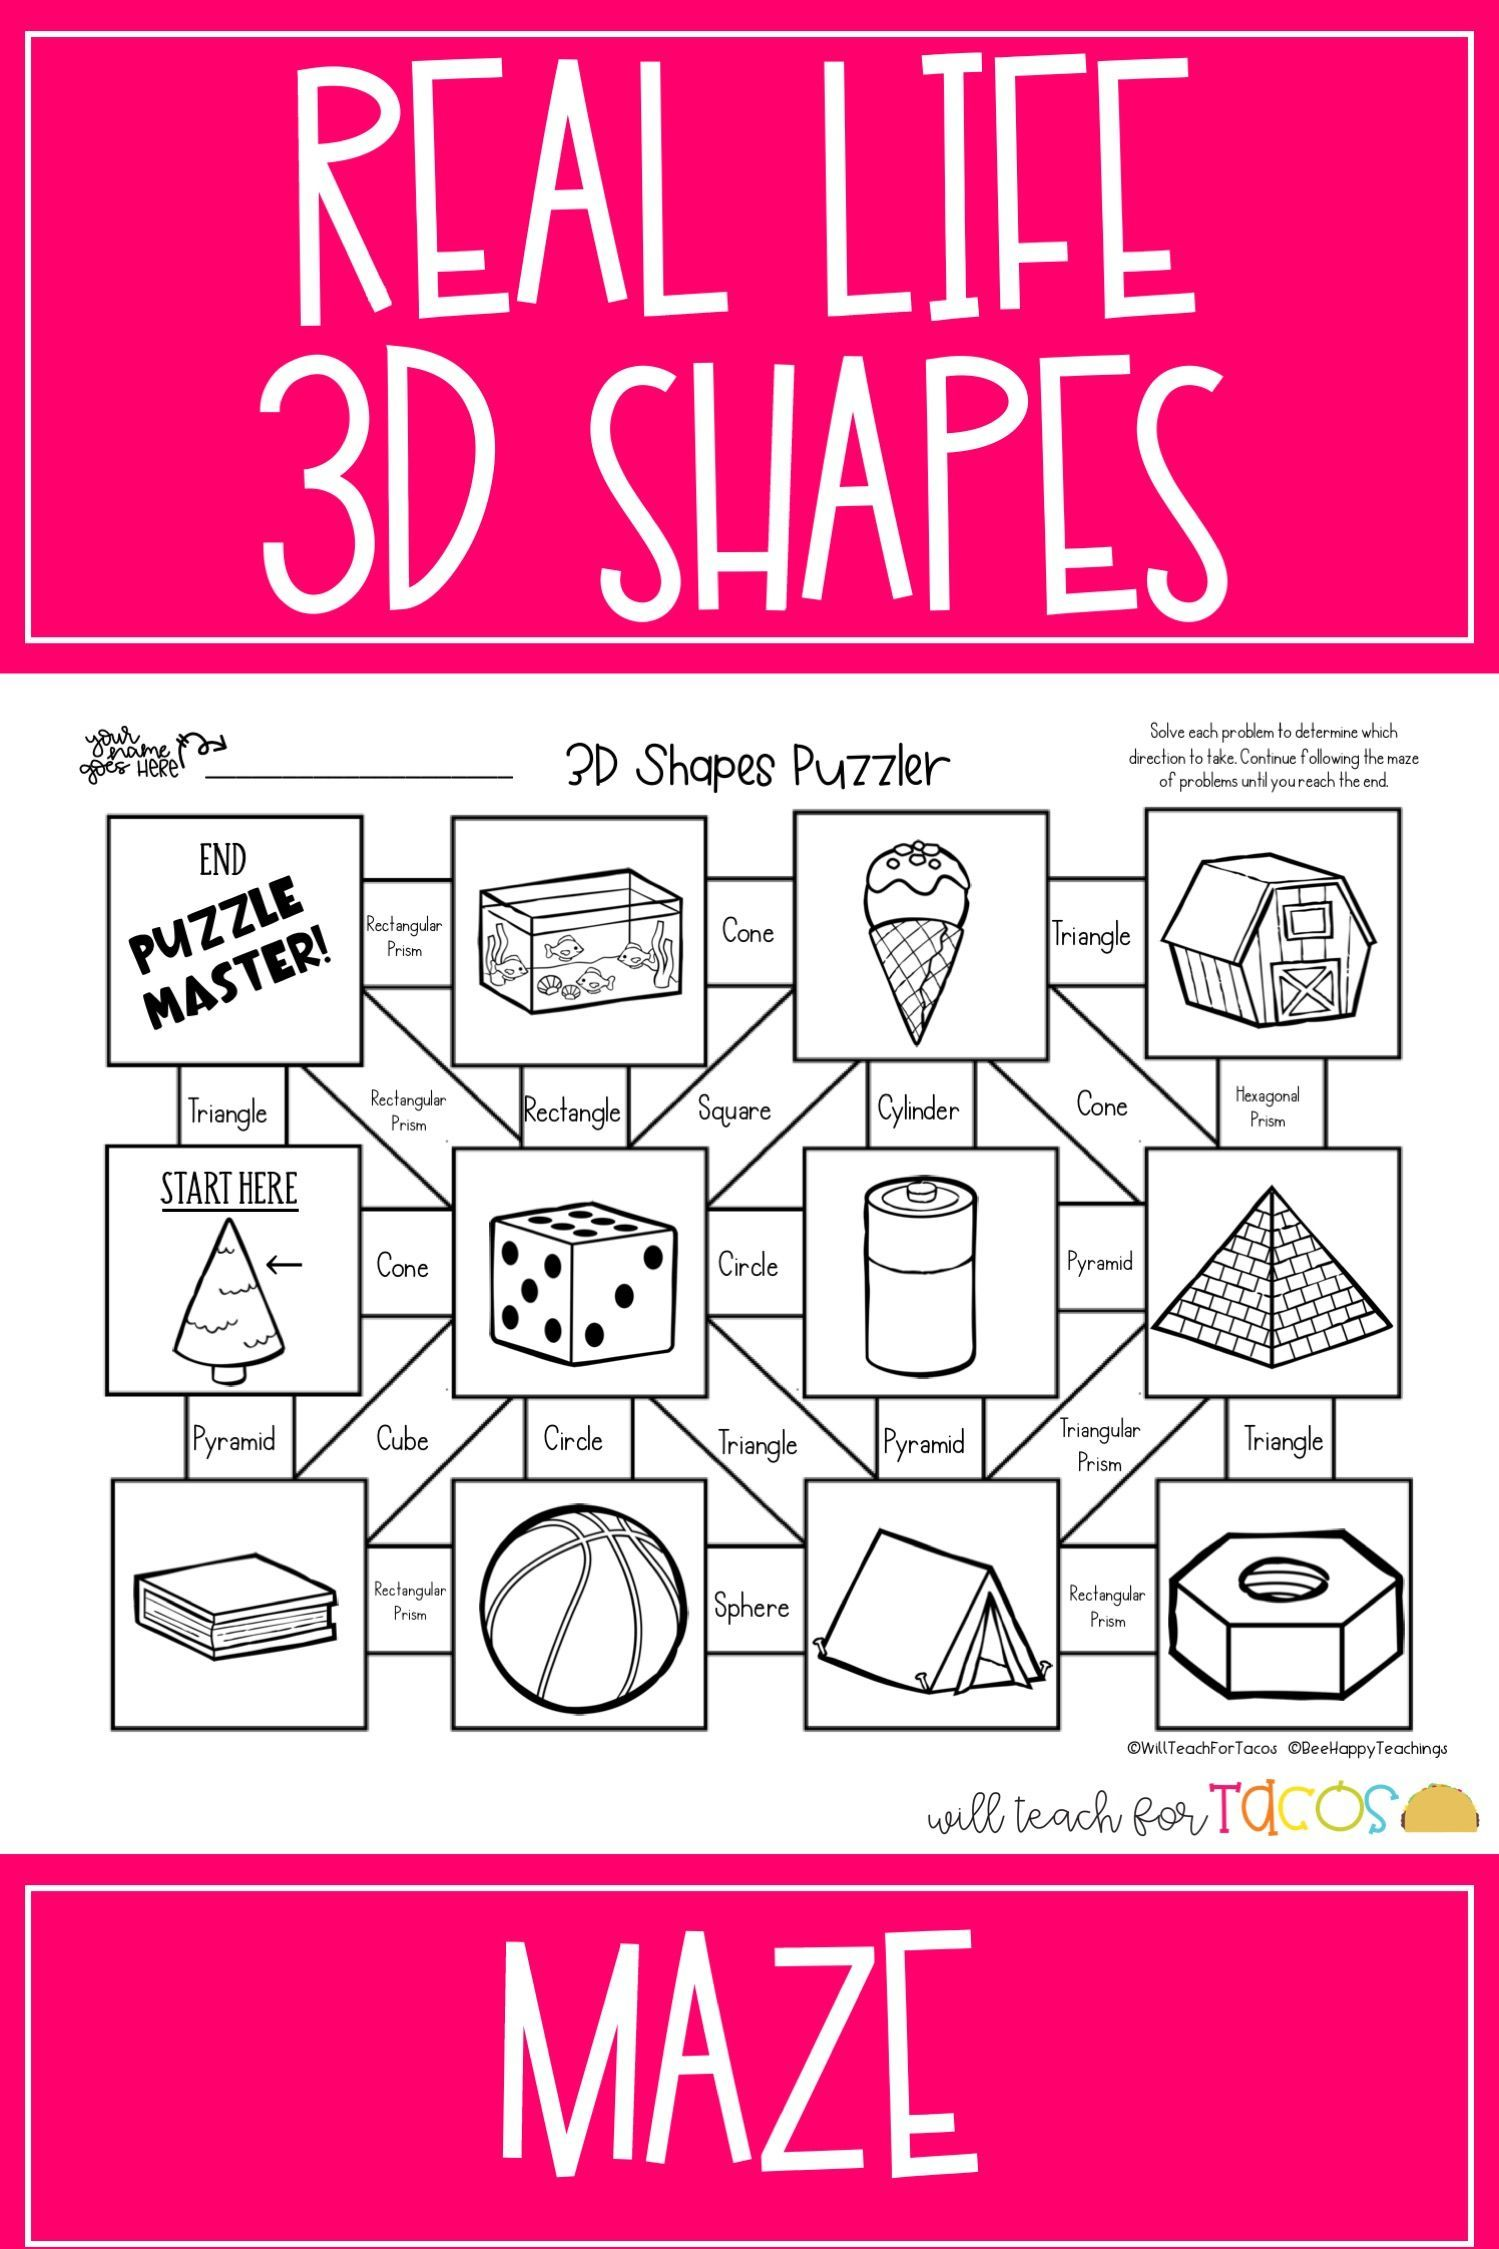 small resolution of classifying 3D shapes with real life objects; maze for 3rd grade    Elementary math games